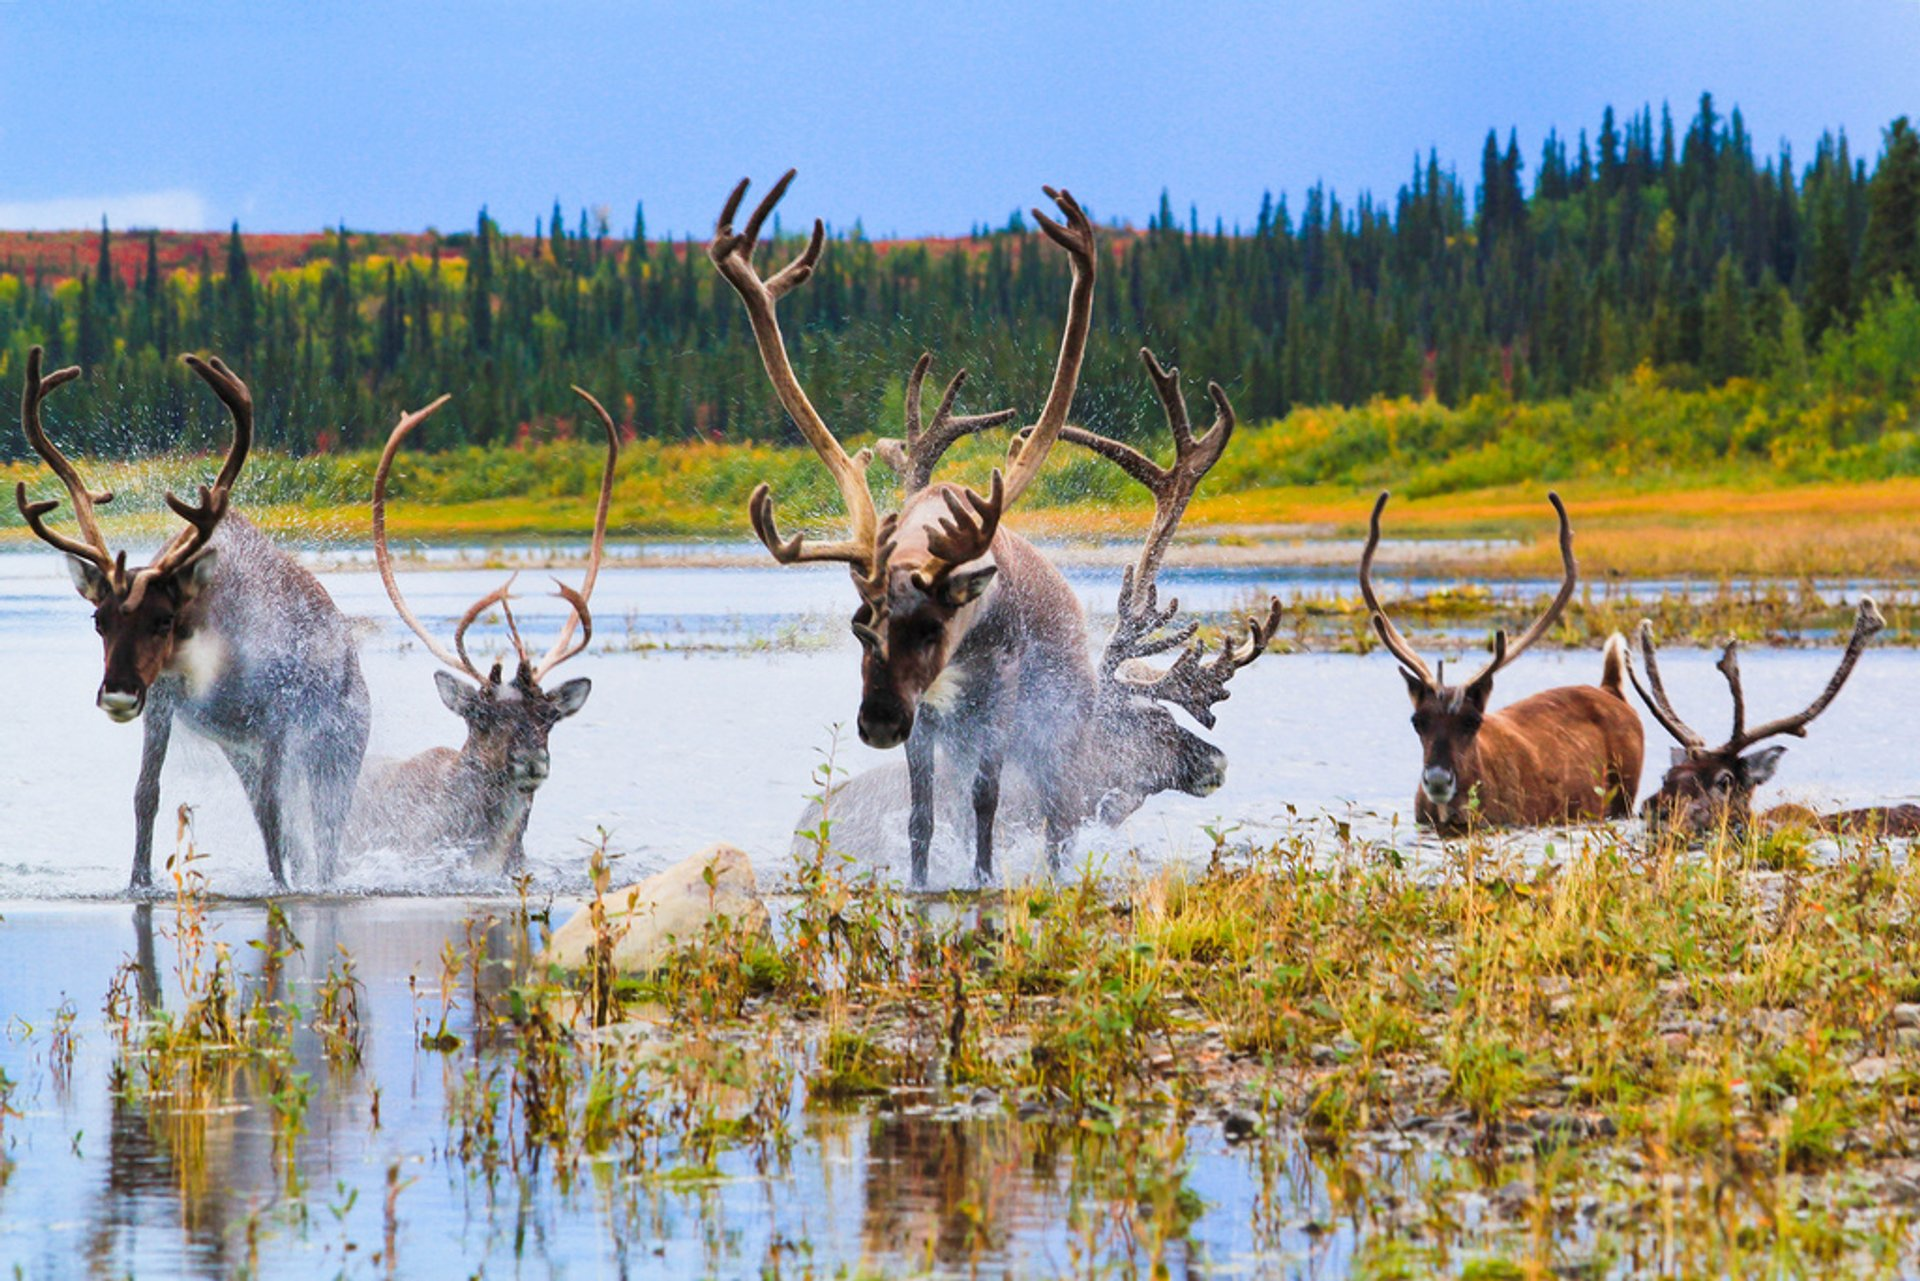 Caribou Autumn Migration in Alaska 2020 - Best Time